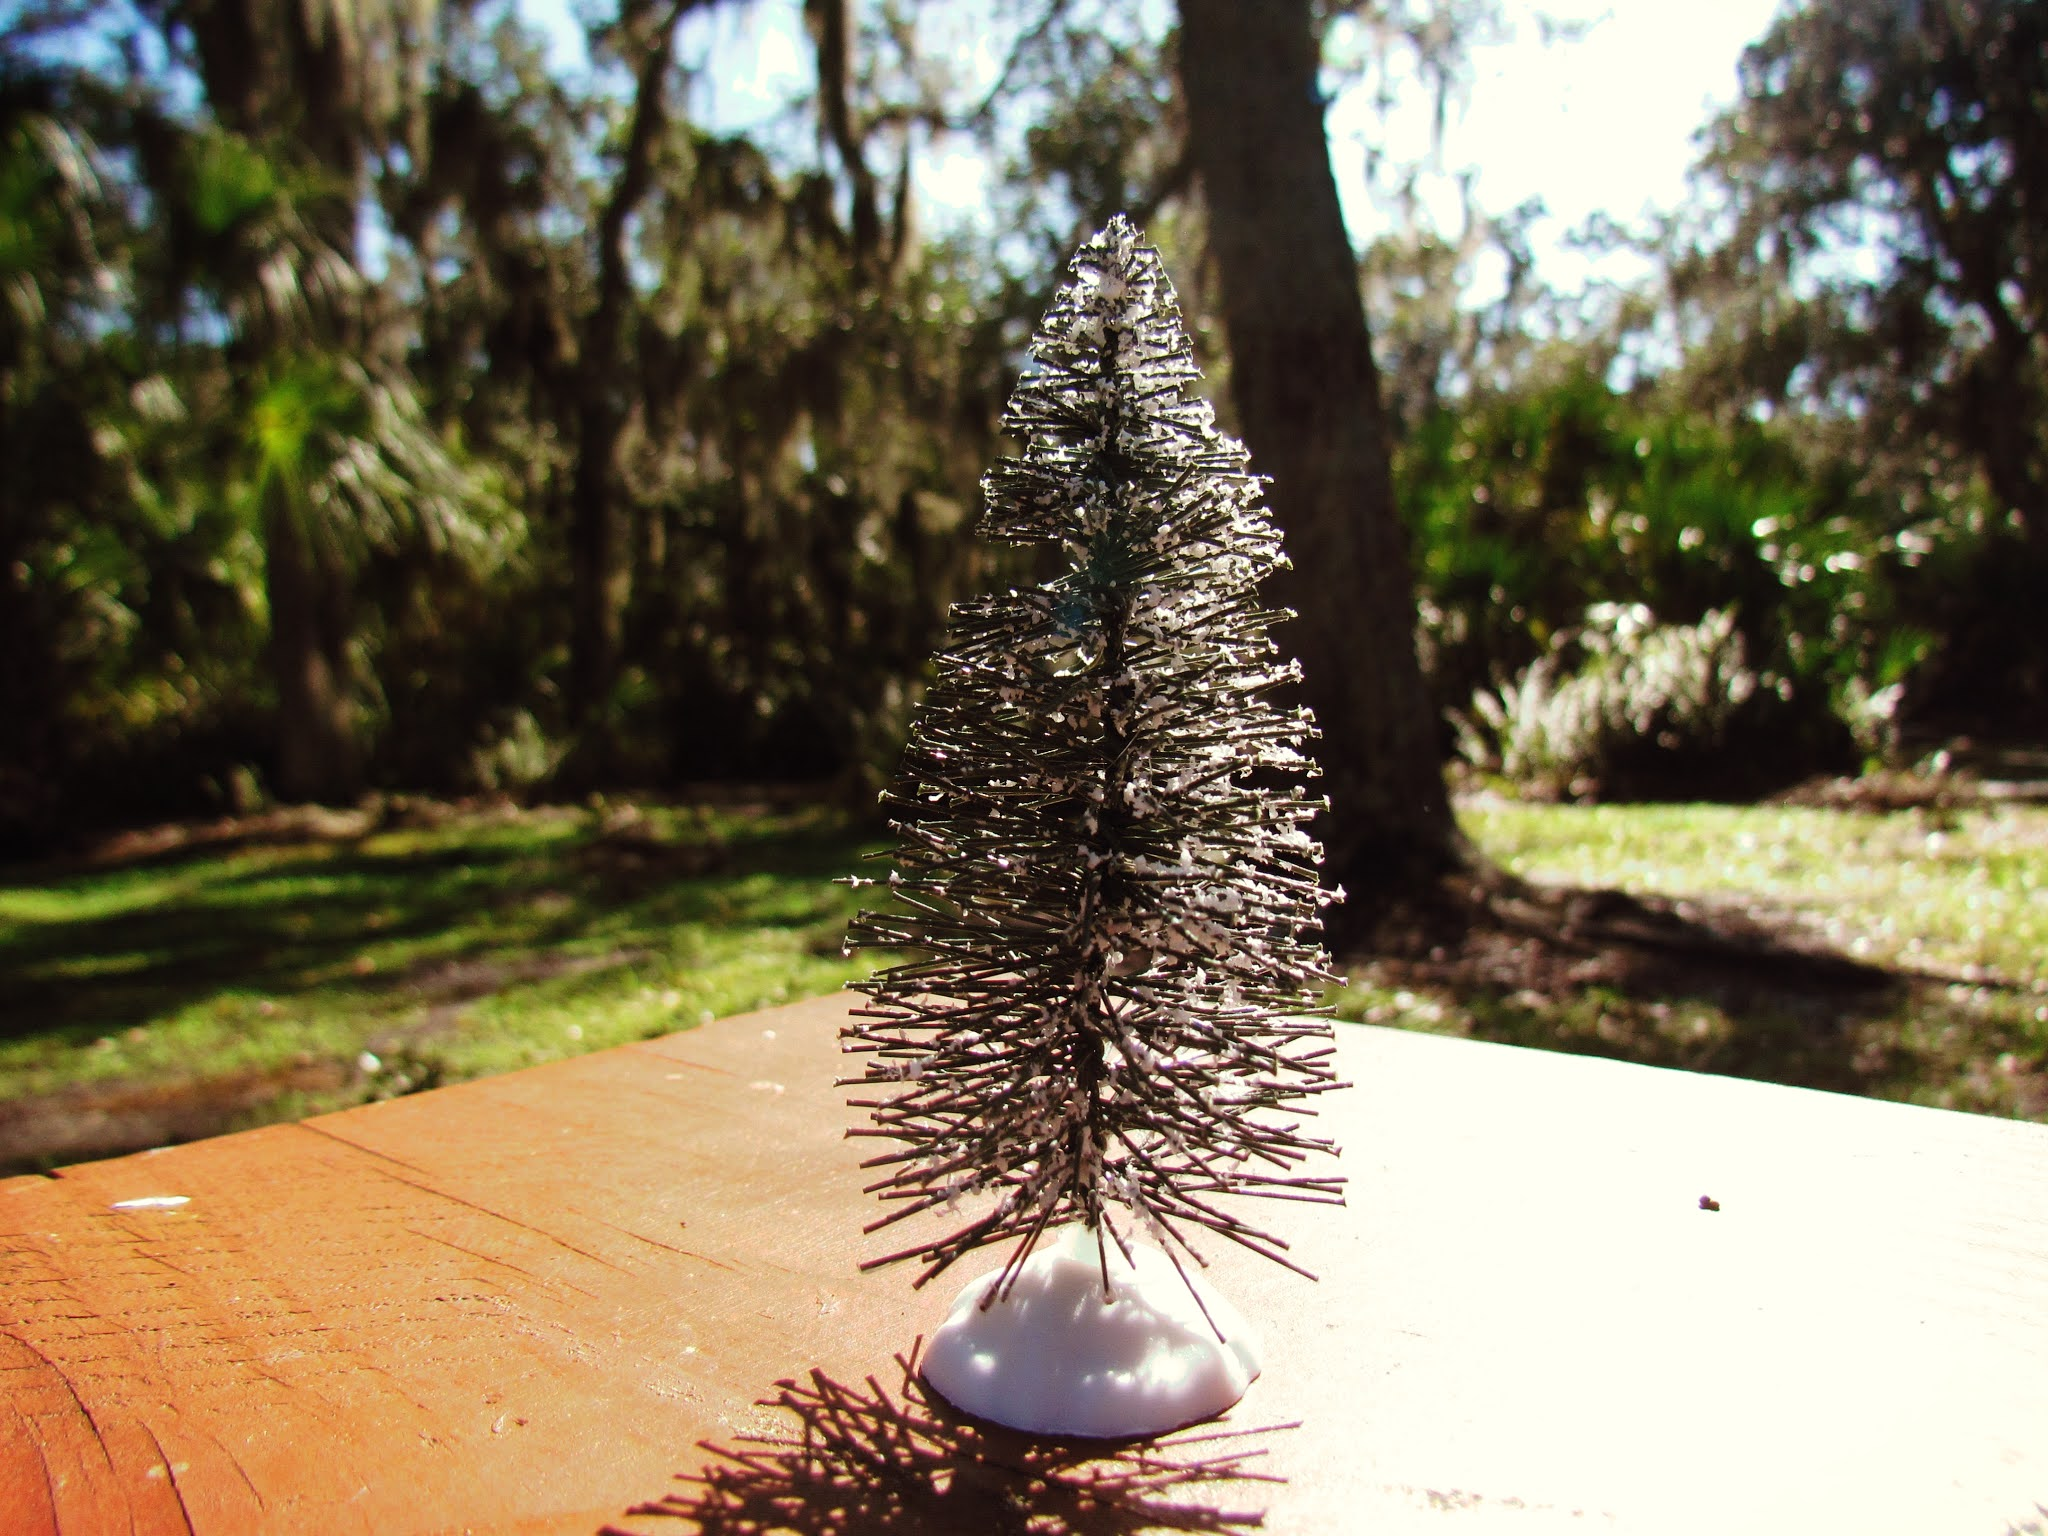 A fake plastic Christmas Tree in a Florida outdoor dining area for poetry readings